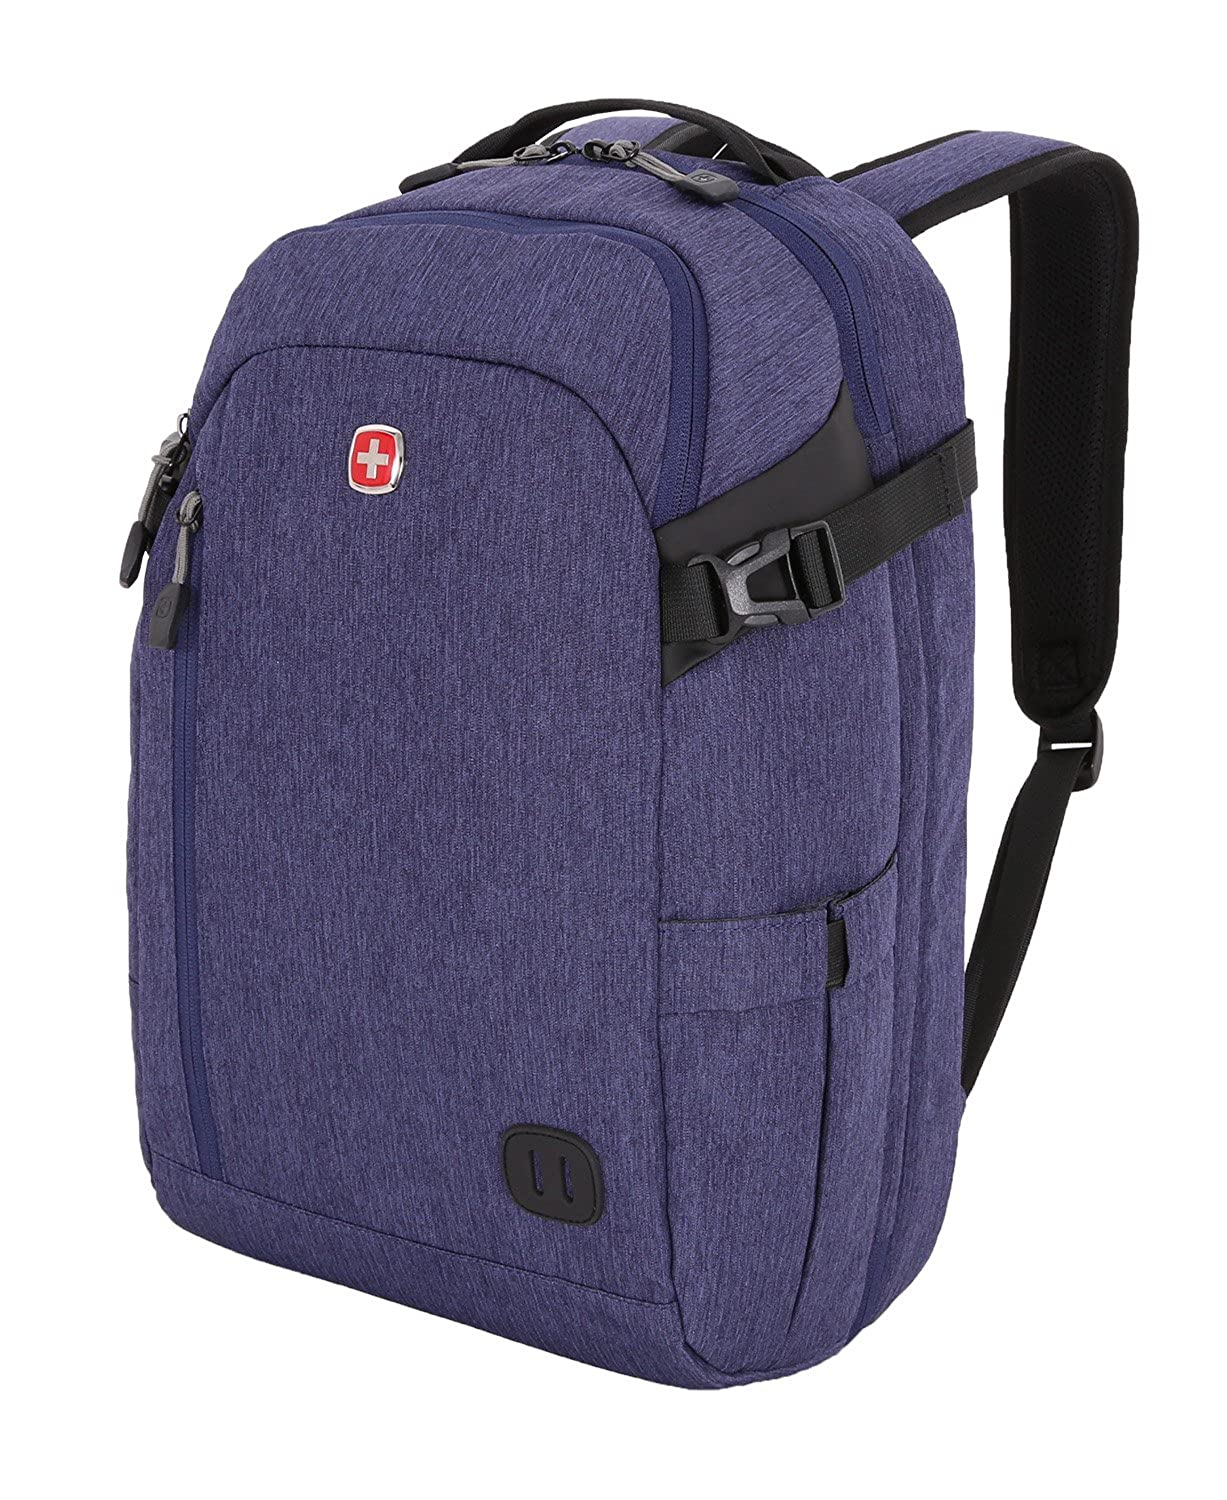 104576dc3 Swissgear Getaway Collection Weekend Backpack Review- Fenix Toulouse ...